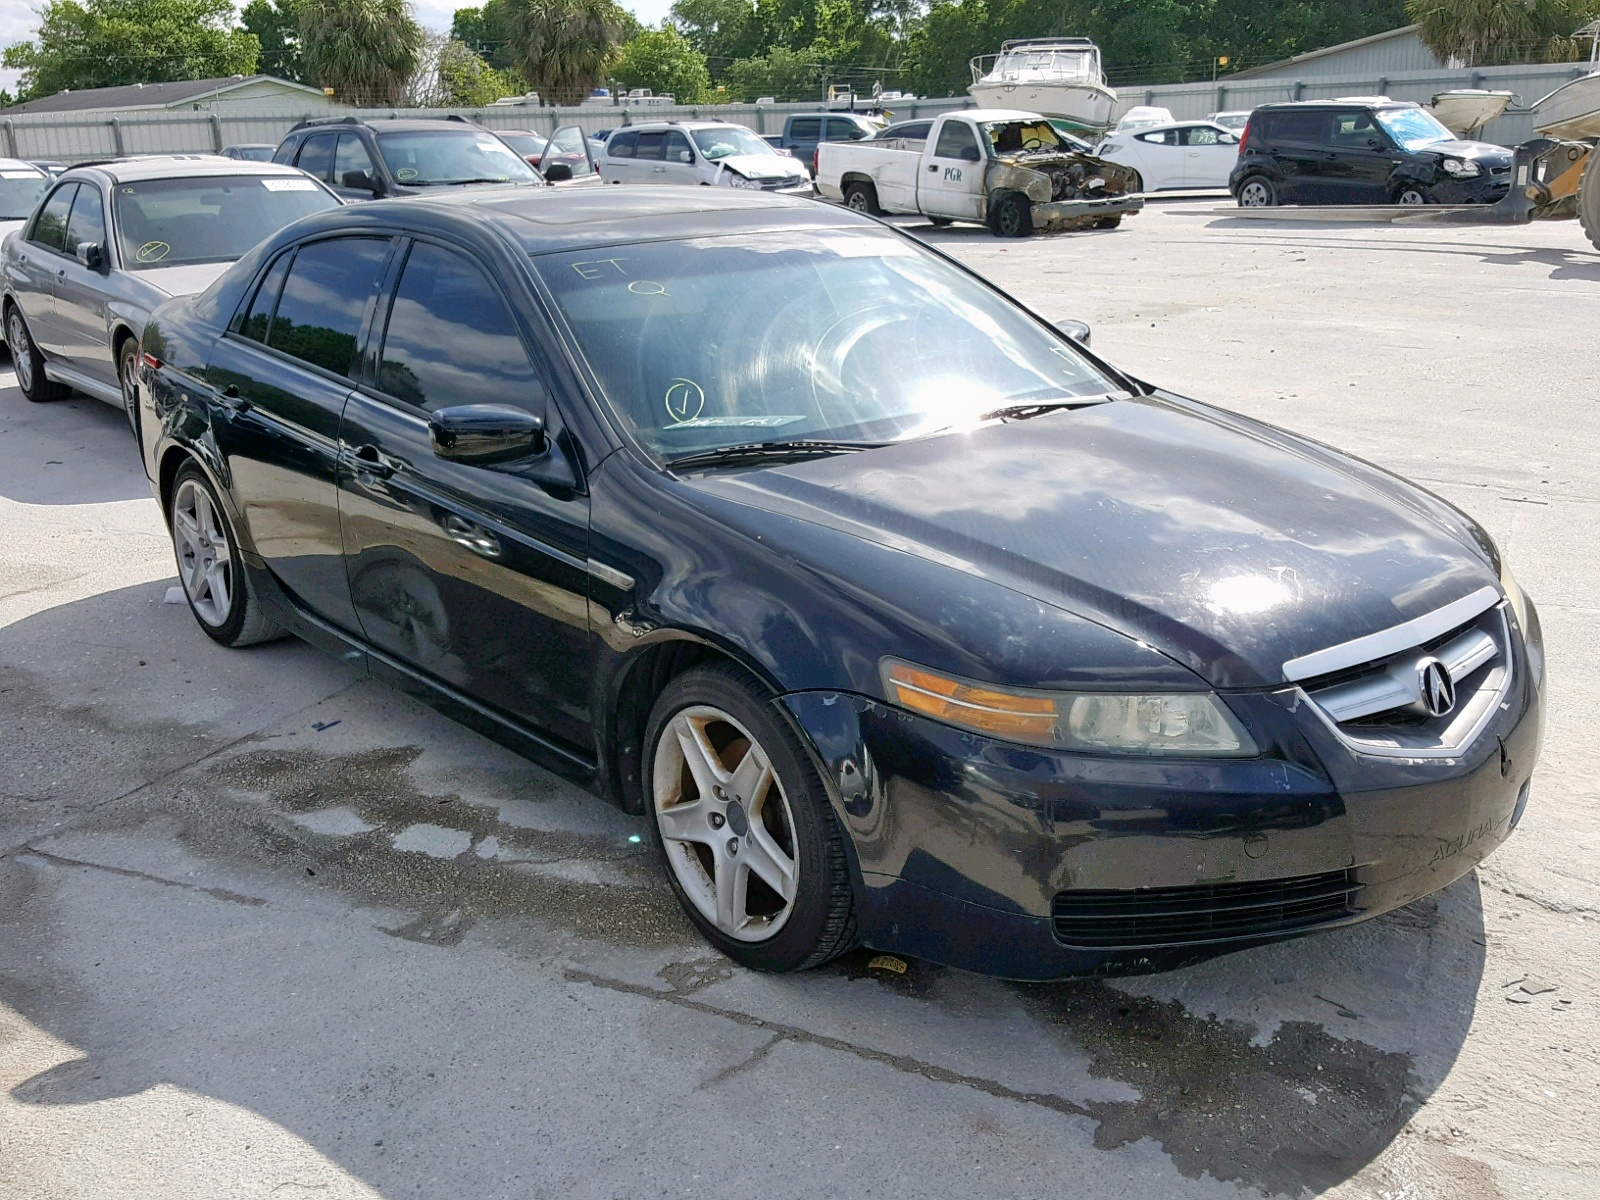 hight resolution of 19uua66295a020504 2005 acura tl 3 2l left view 19uua66295a020504